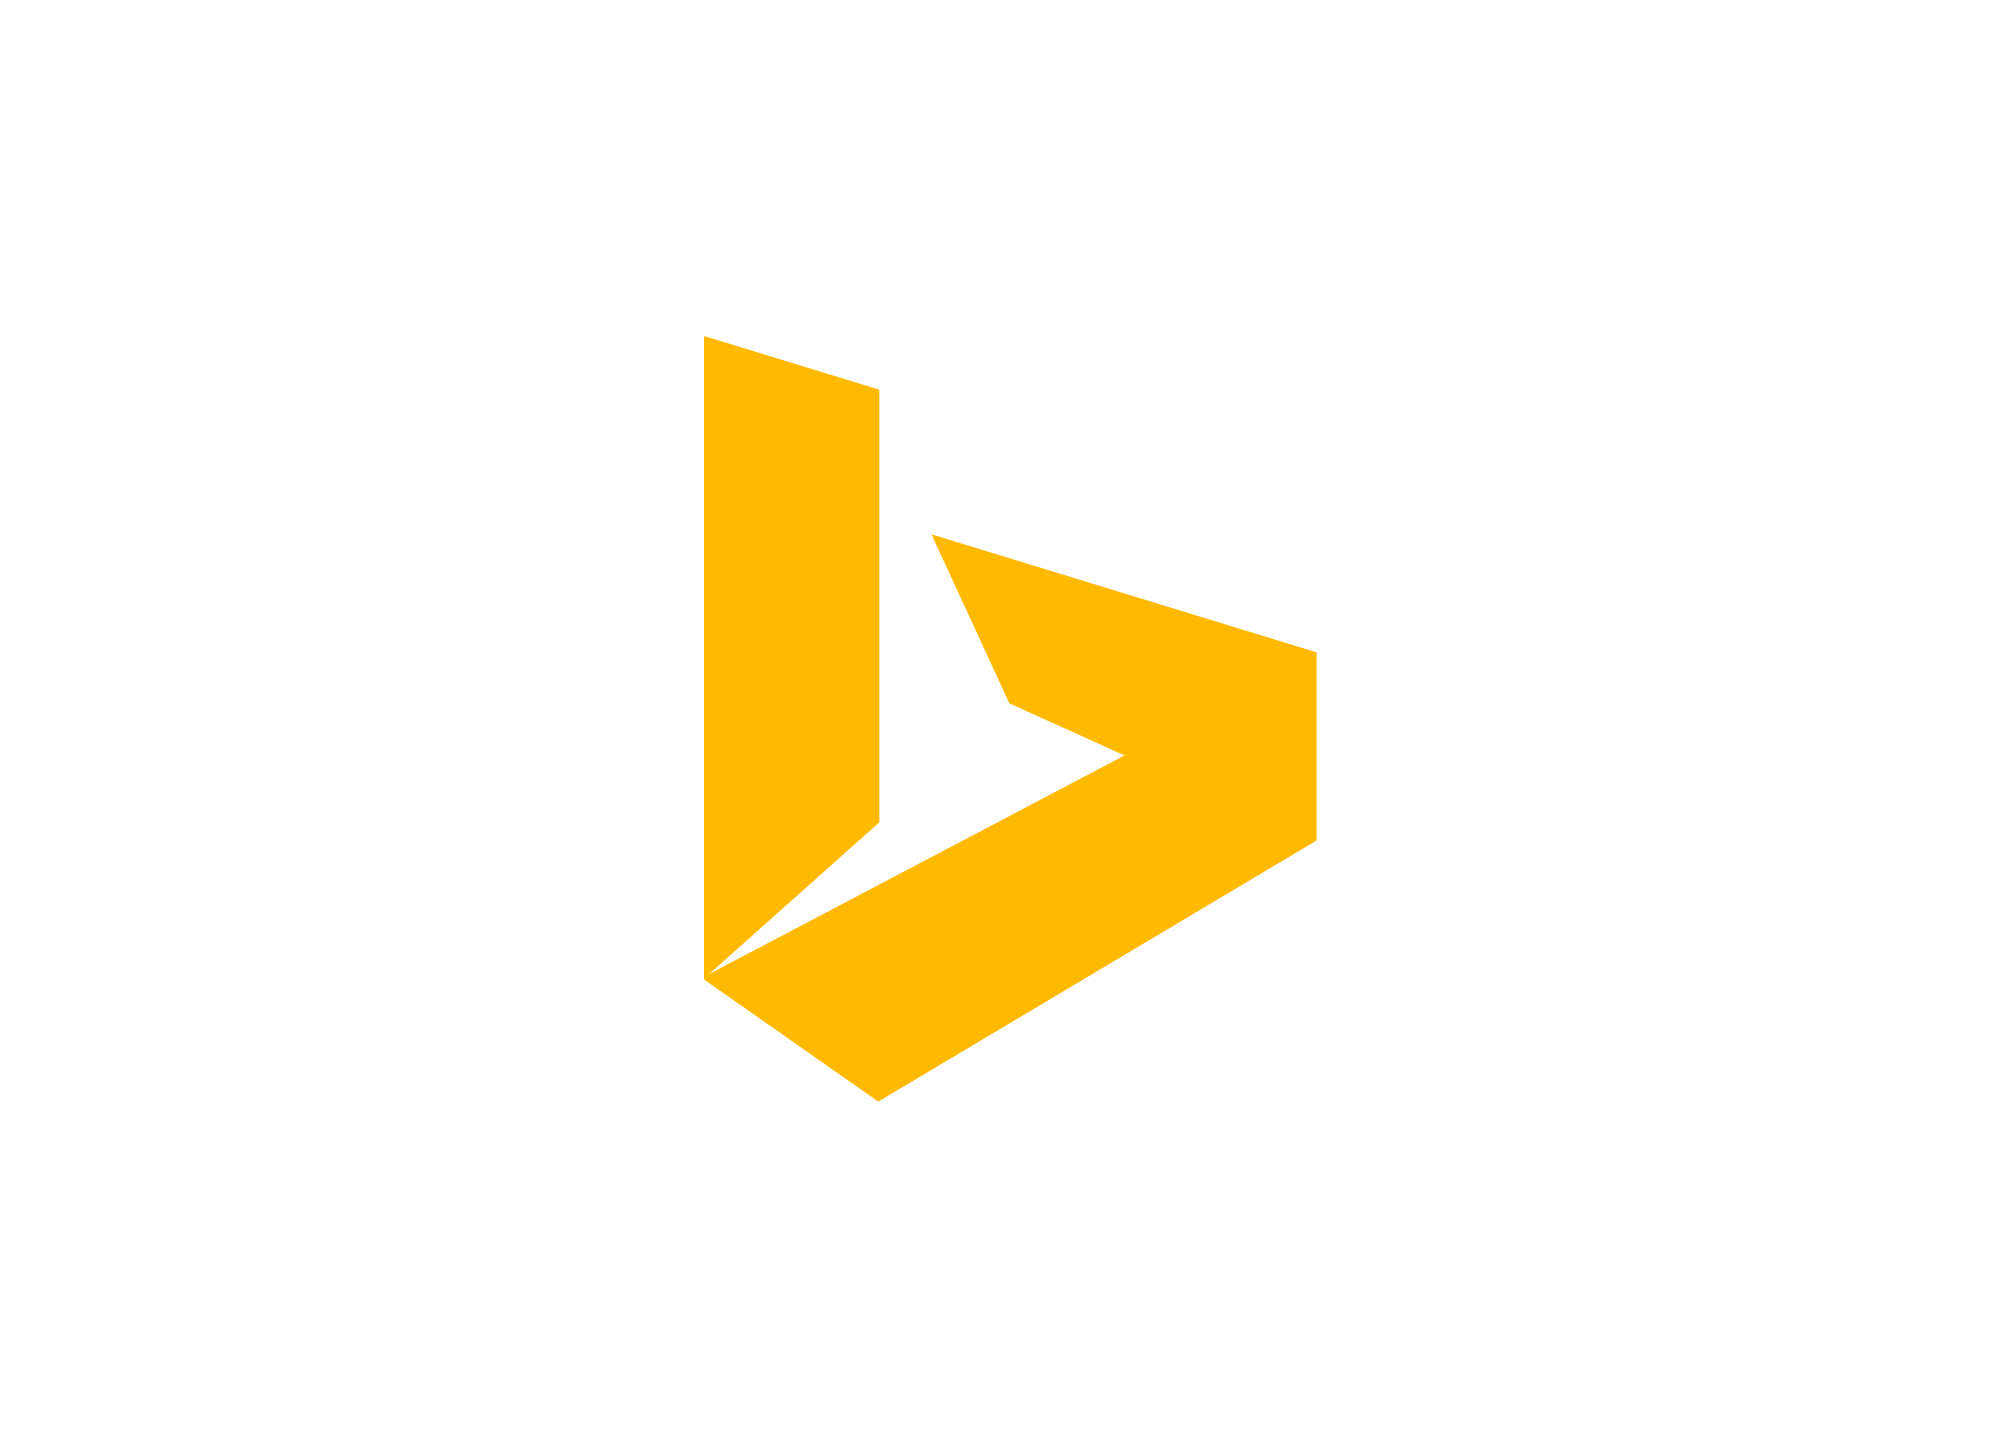 Filename: Bing-logo.png - Logo Bing PNG